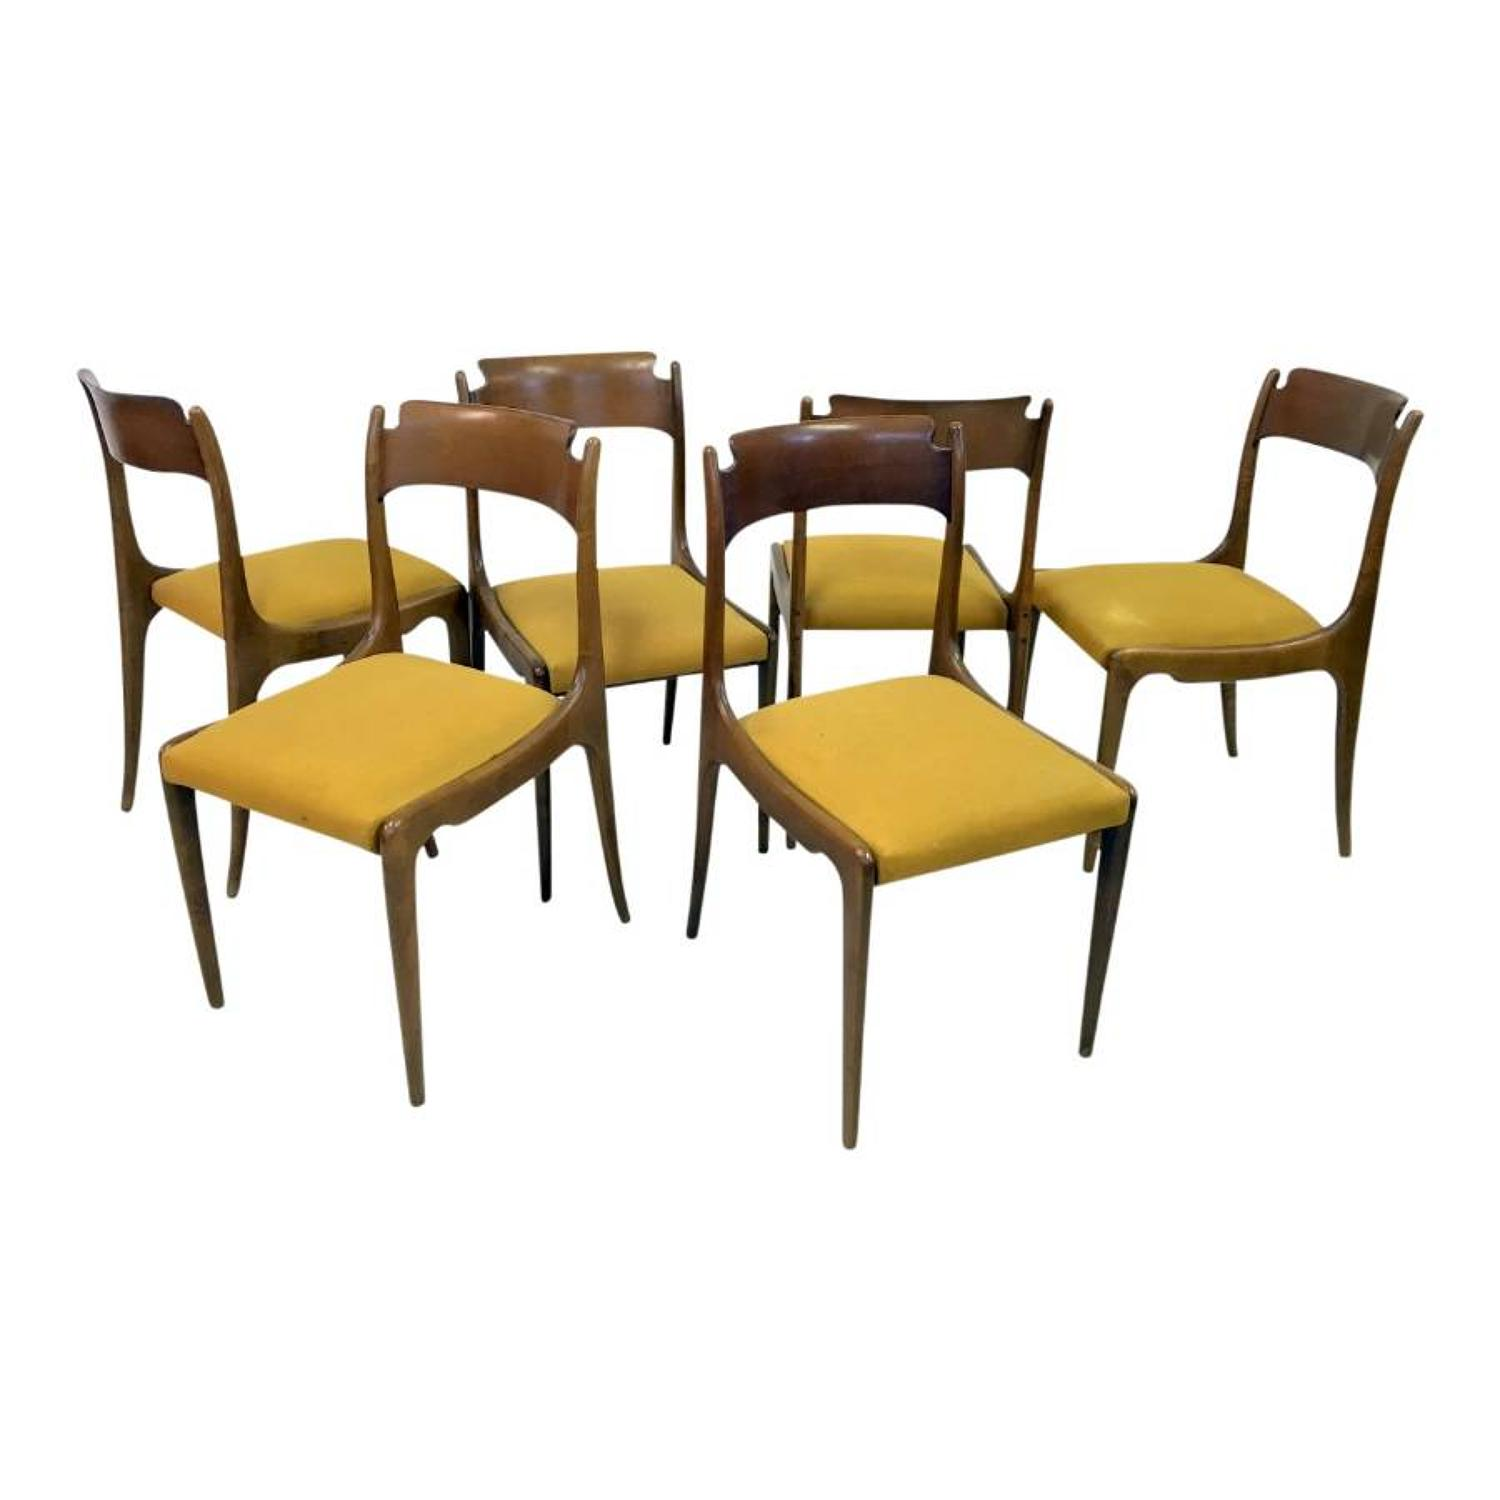 A set of six 1950s Italian dining chairs